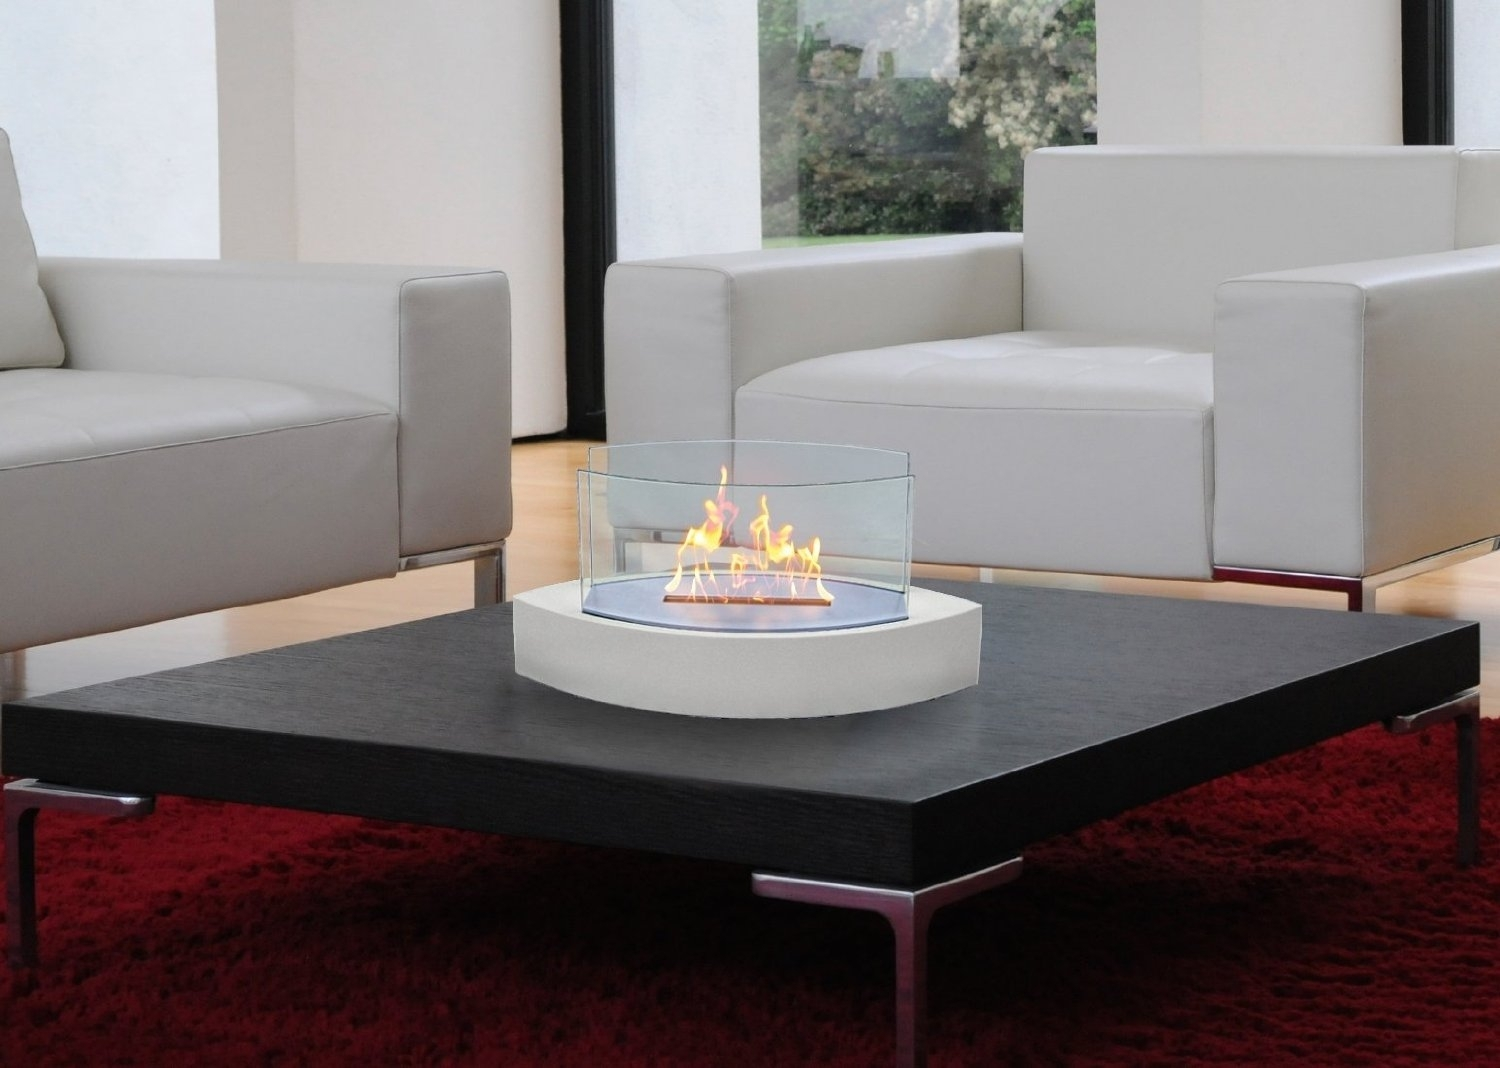 Best Ventless Tabletop Fireplace Reviews In 2017 Ultimate With Bio Ethanol Outdoor Fireplace Wonderful Bio Ethanol Outdoor Fireplace